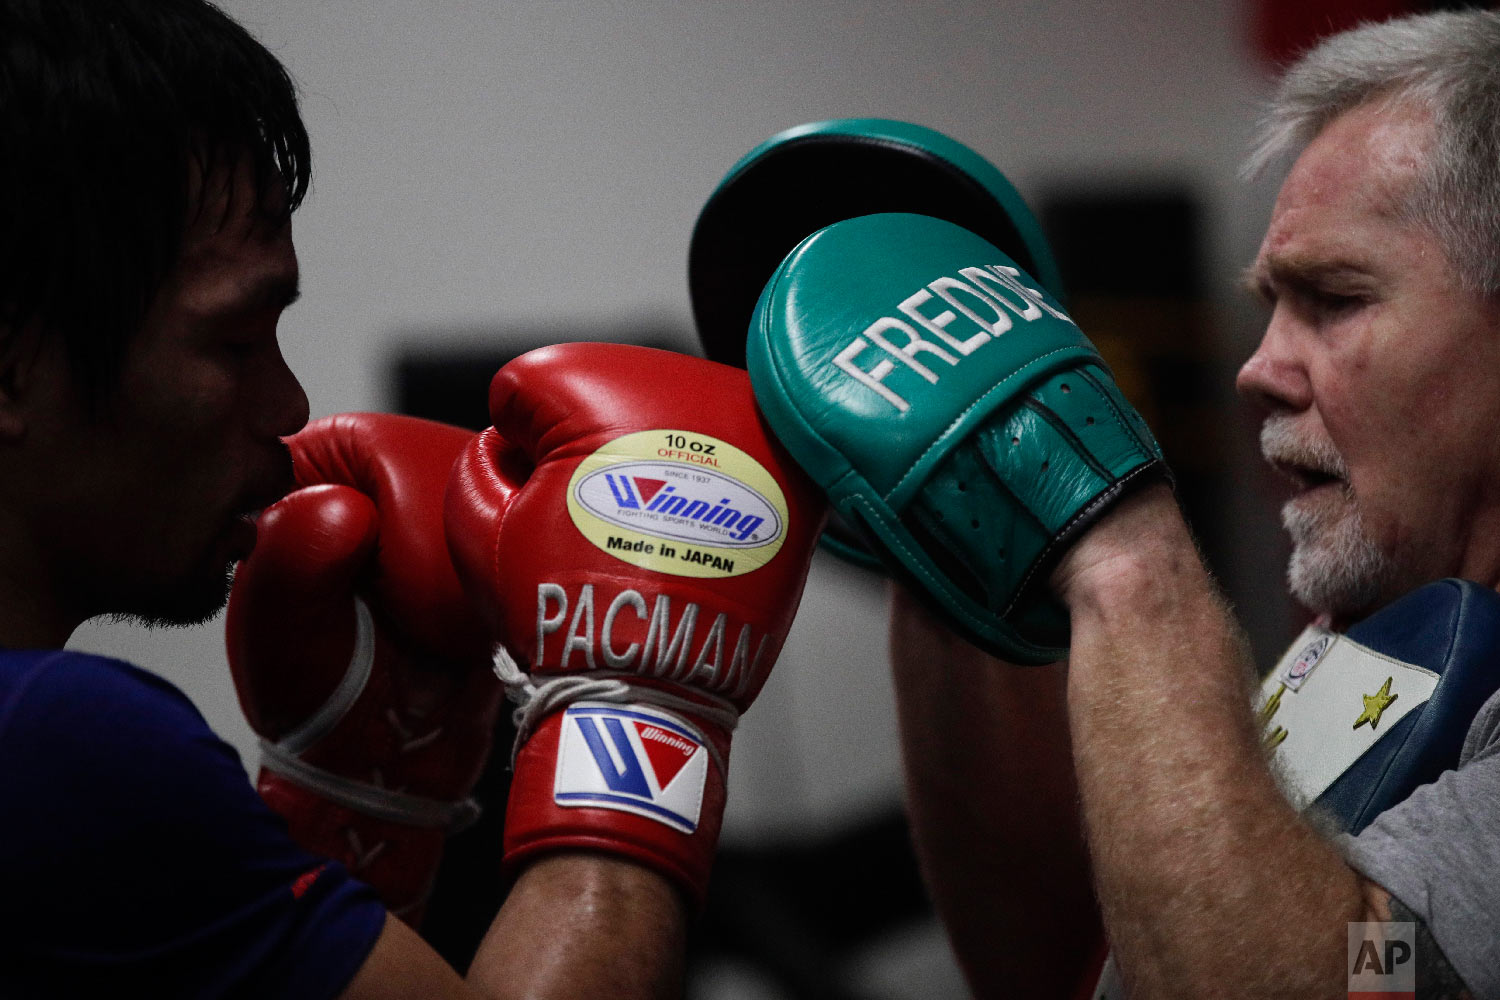 Boxer Manny Pacquiao, left, trains with Freddie Roach at the Wild Card Boxing Club on Jan. 14, 2019, in Los Angeles. (AP Photo/Jae C. Hong)